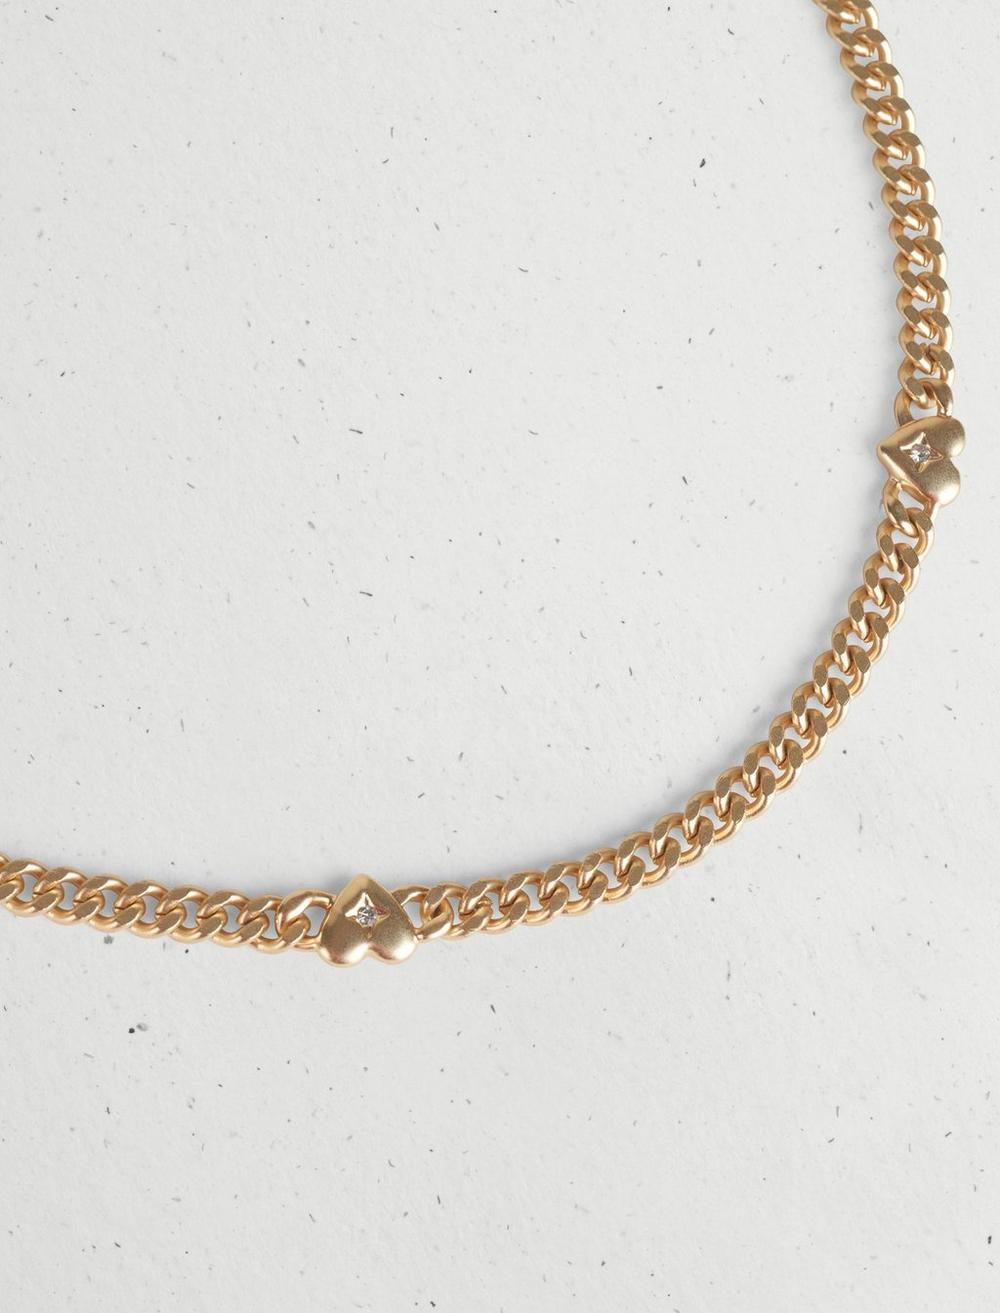 CHAIN HEART NECKLACE, image 3